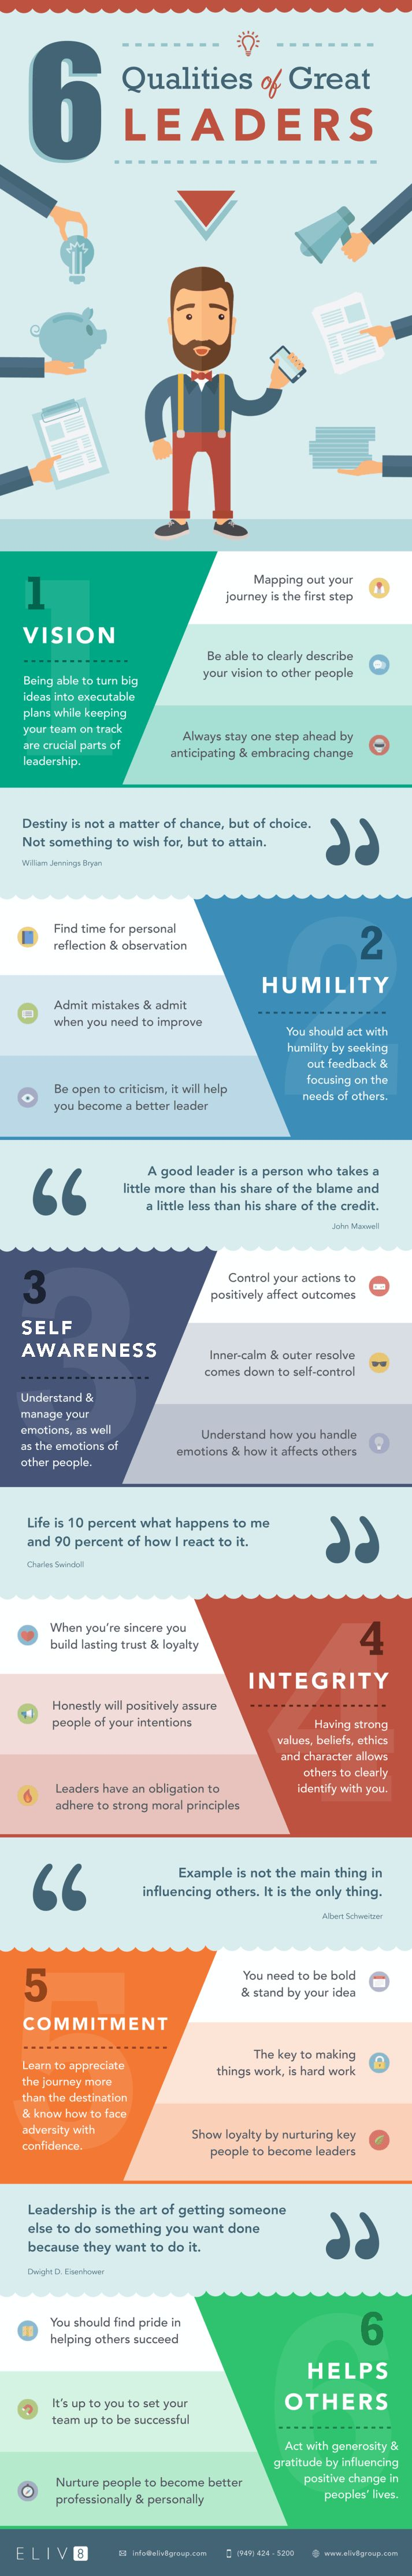 This infographic highlights the 6 most important qualities of great leaders.